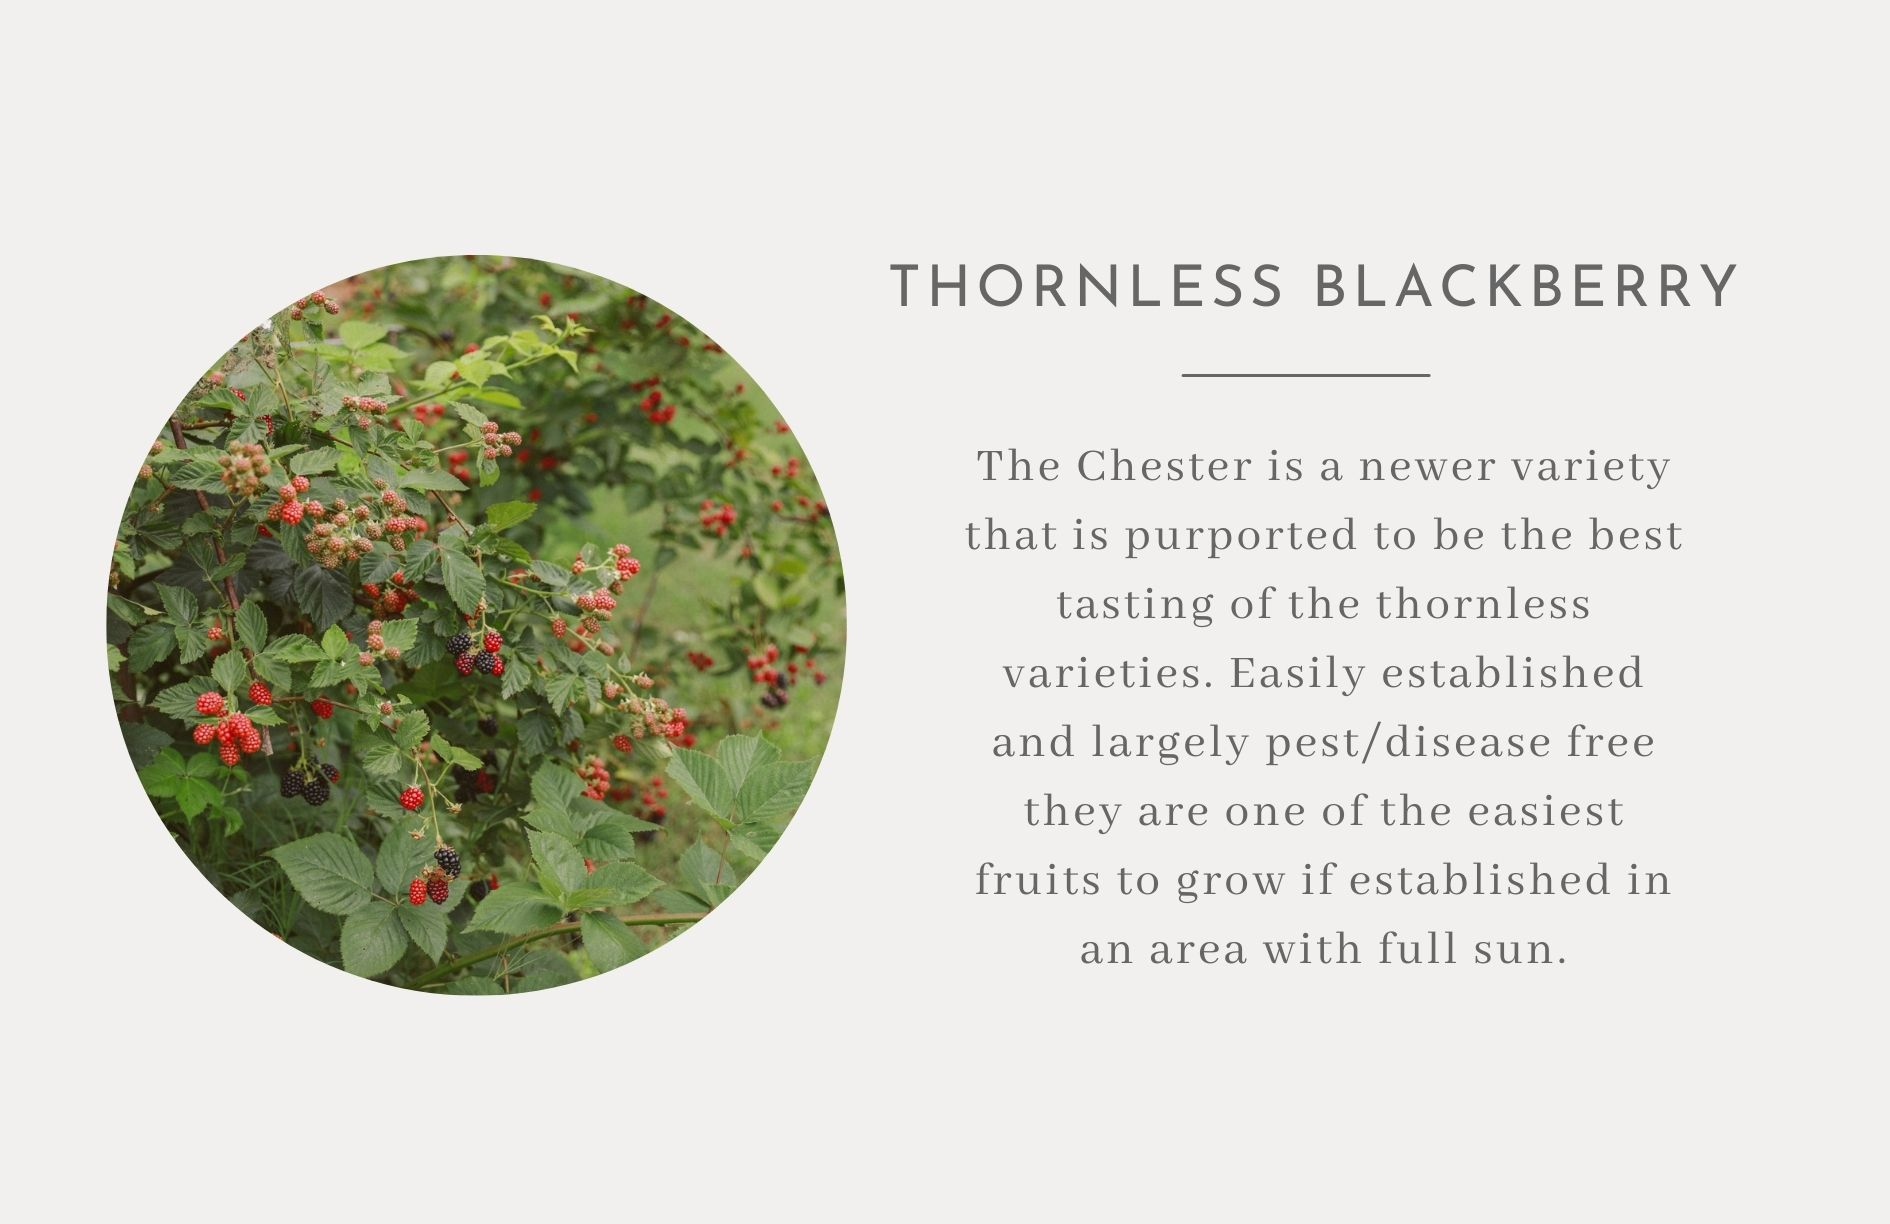 Thornless Blackberry - Edible trees and bushes